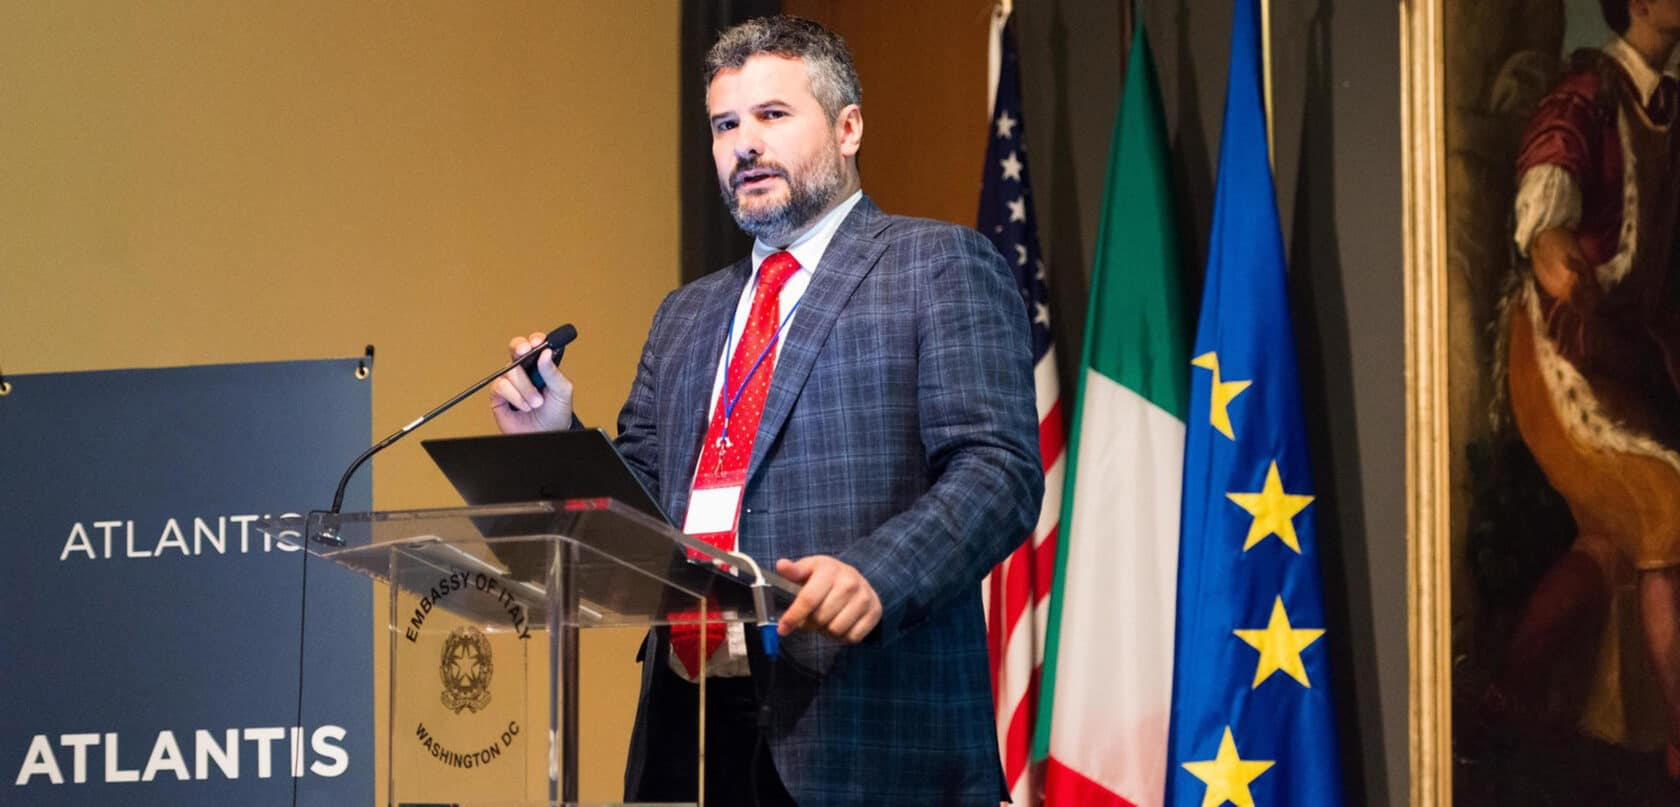 A speaker at the Atlantis Connect Conference, 2018.